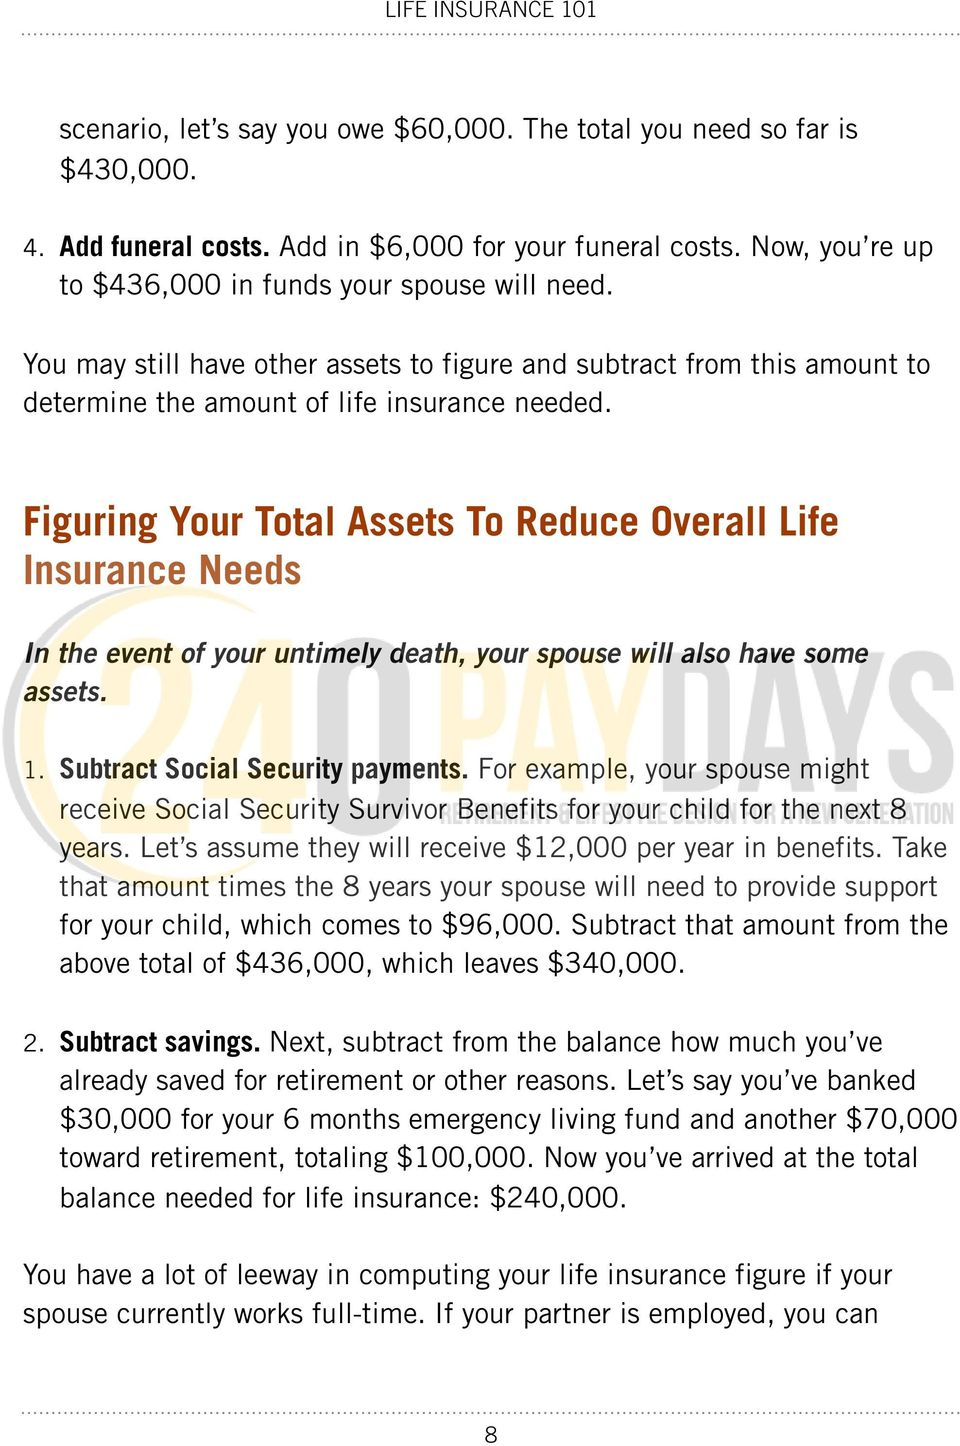 Figuring Your Total Assets To Reduce Overall Life Insurance Needs In the event of your untimely death, your spouse will also have some assets. 1. Subtract Social Security payments.